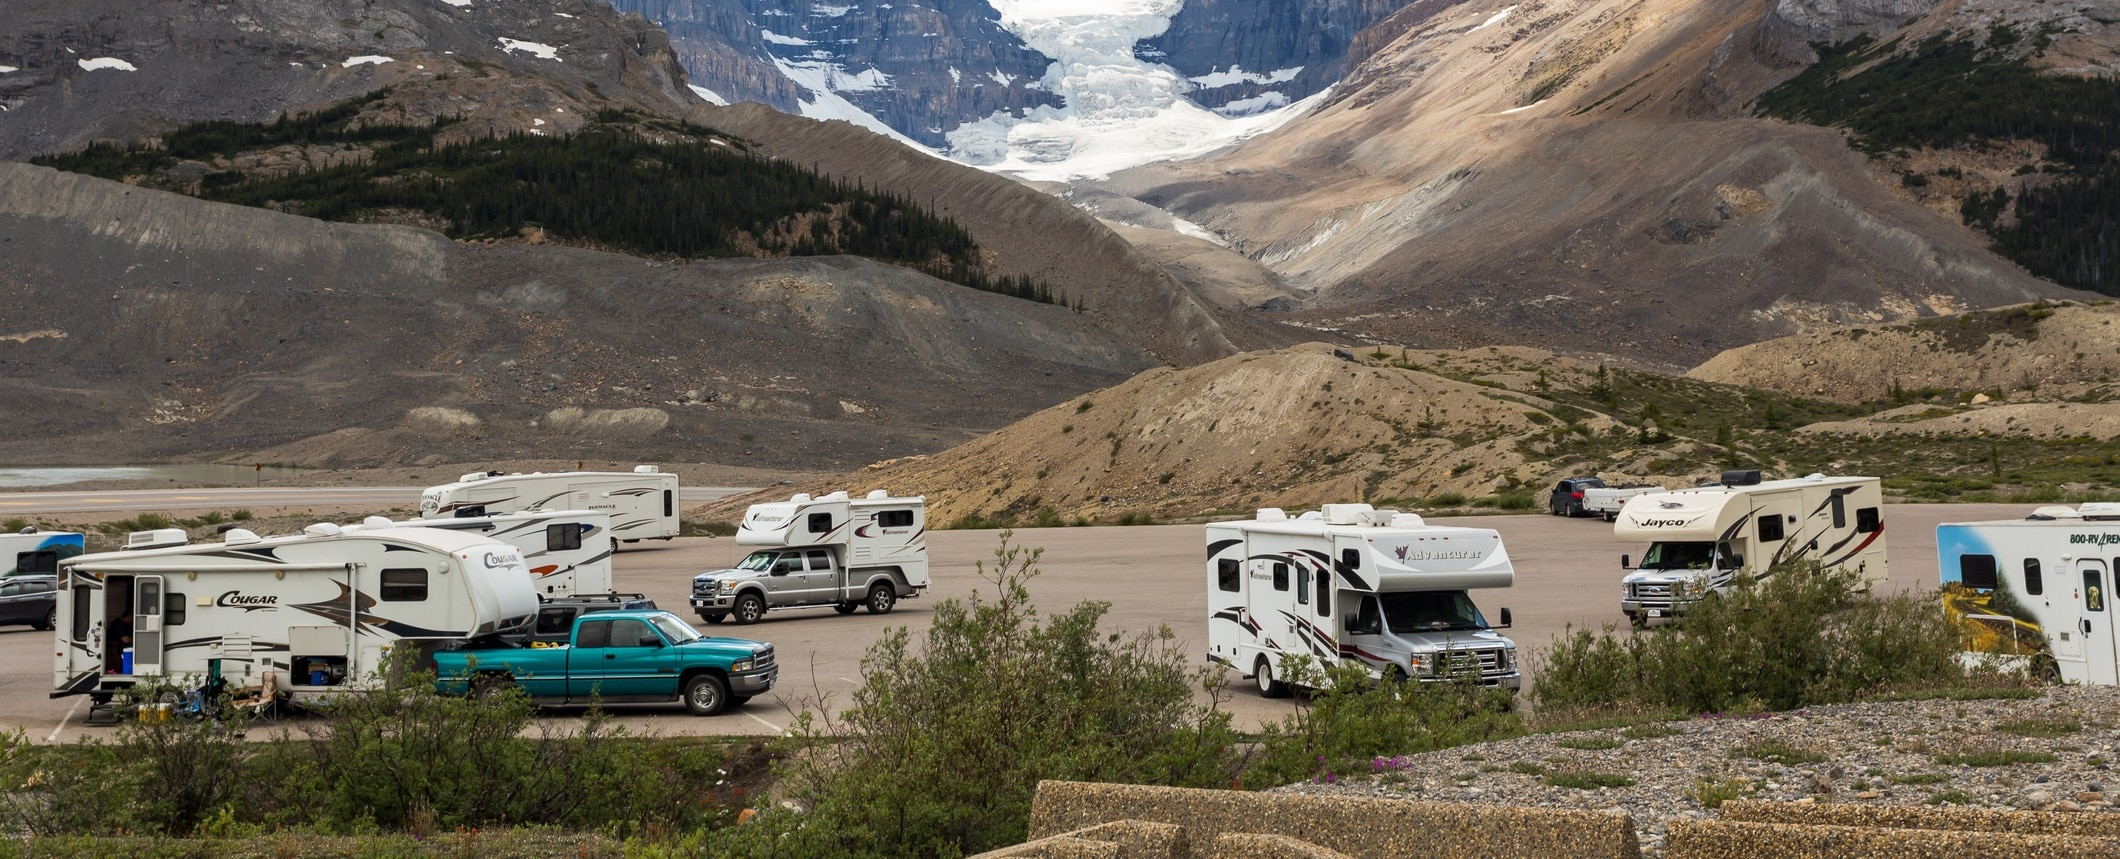 RVs parked in a public area.